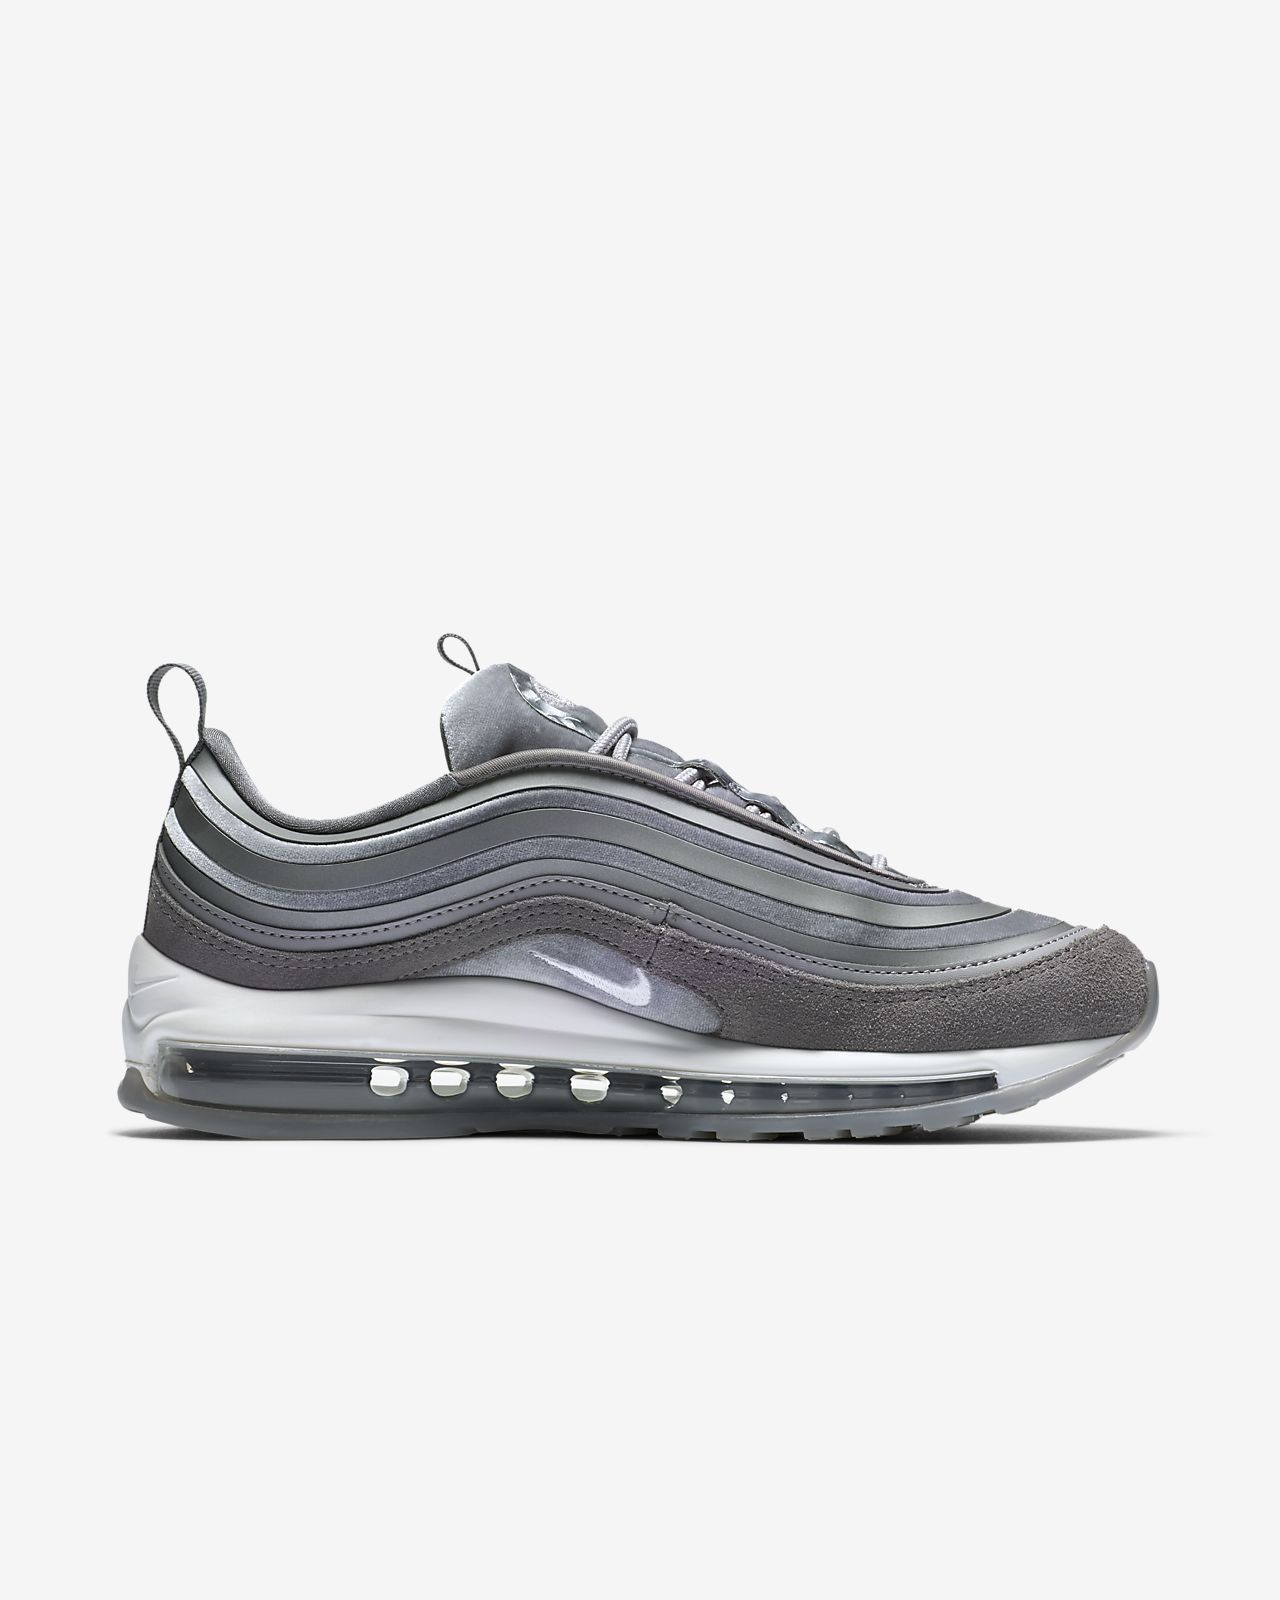 ... Nike Air Max 97 Ultra '17 LX Women's Shoe